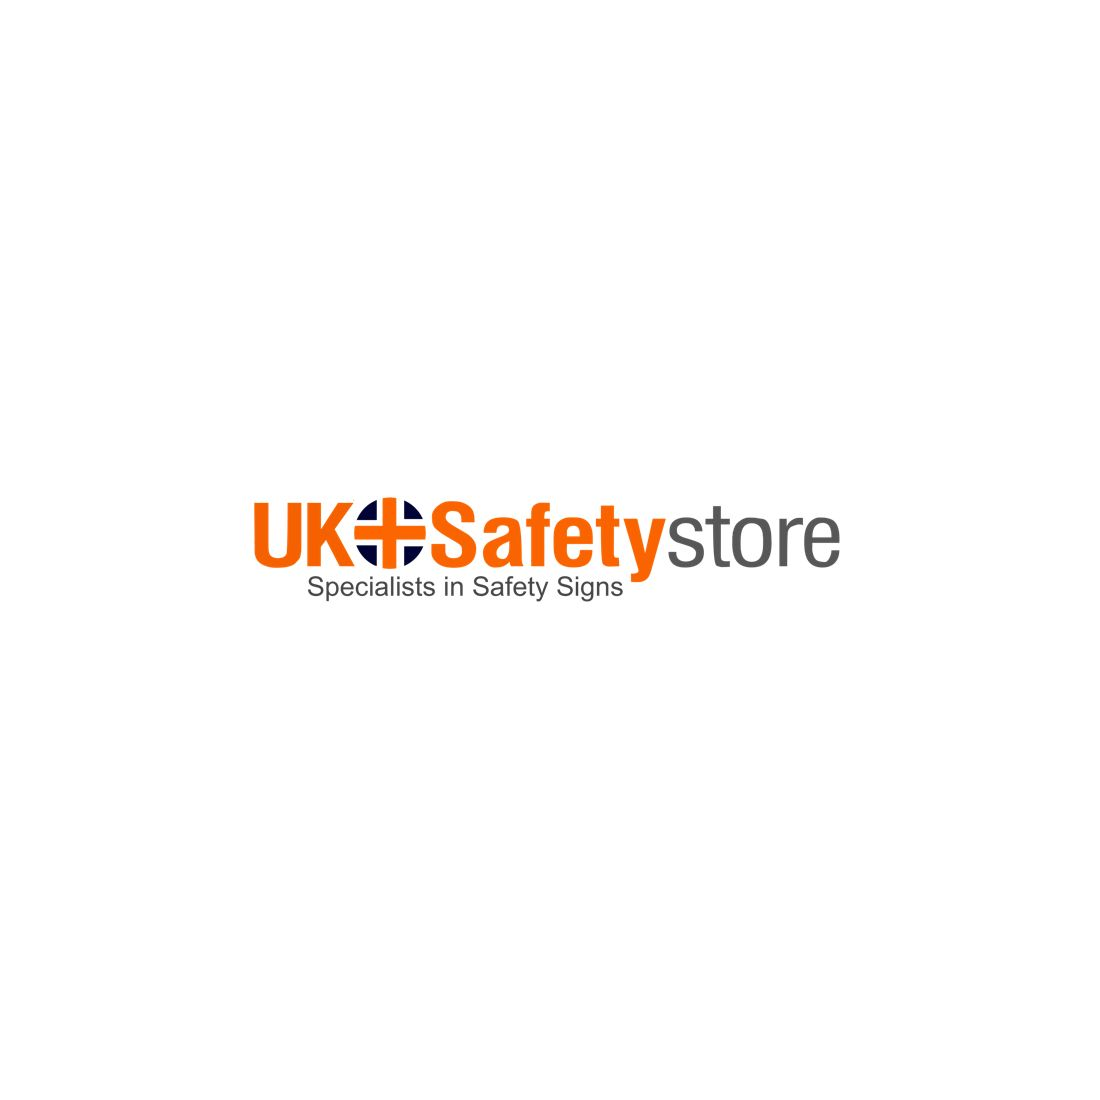 Site Safety All Visitors and Contractors Must Report to the Main Site Offices 1200W X 1200Hmm Aluminium Composite Sign with Your Logo